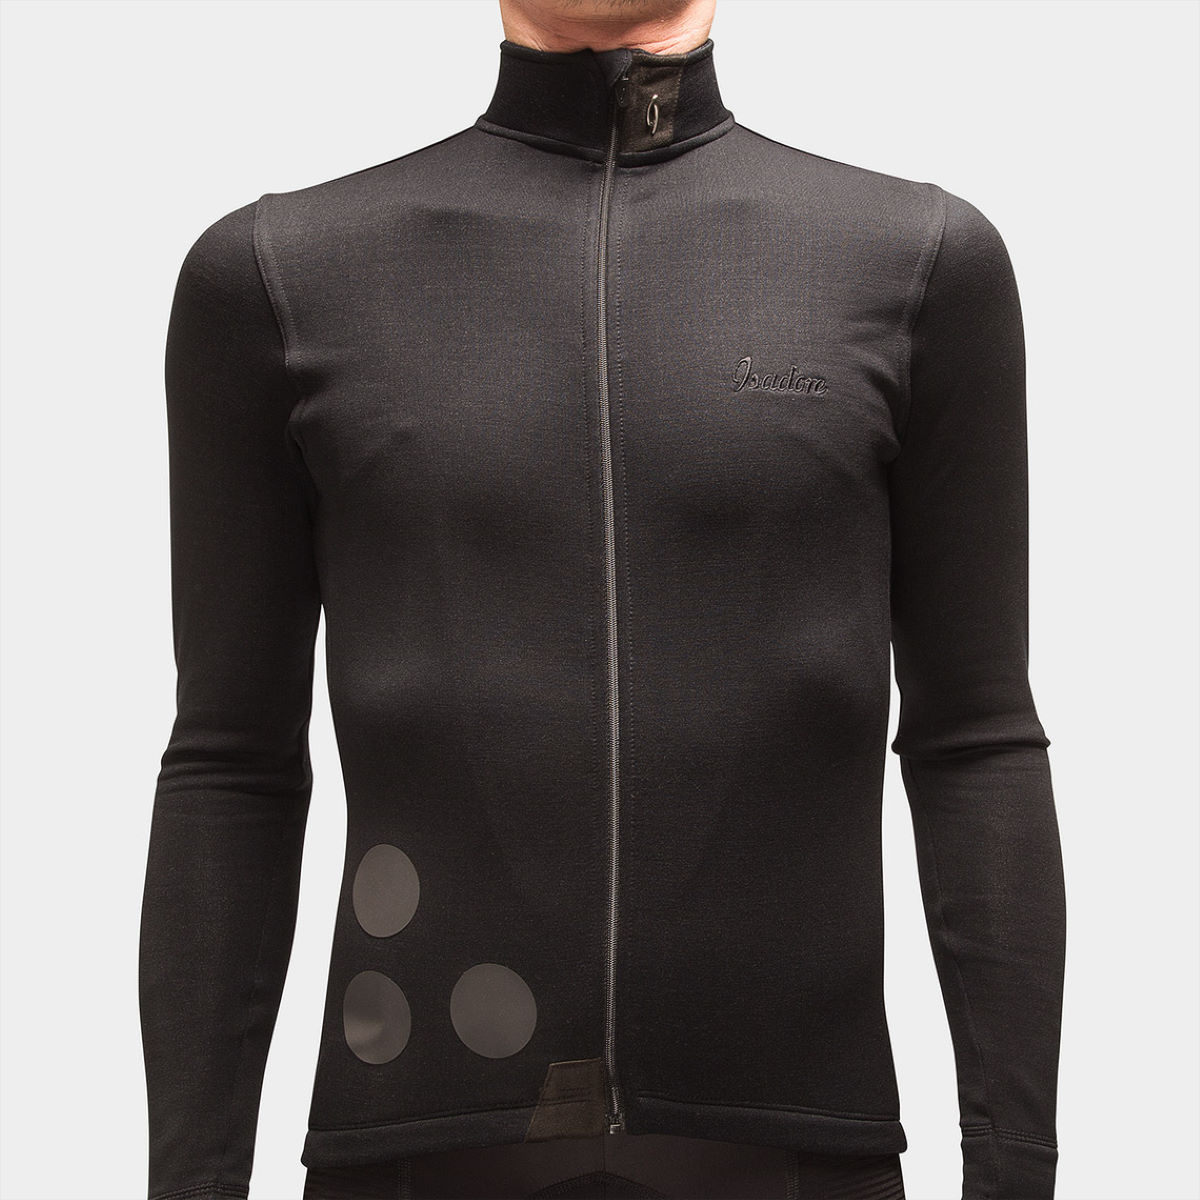 Maillot Isadore Thermerino (manches longues) - M Noir